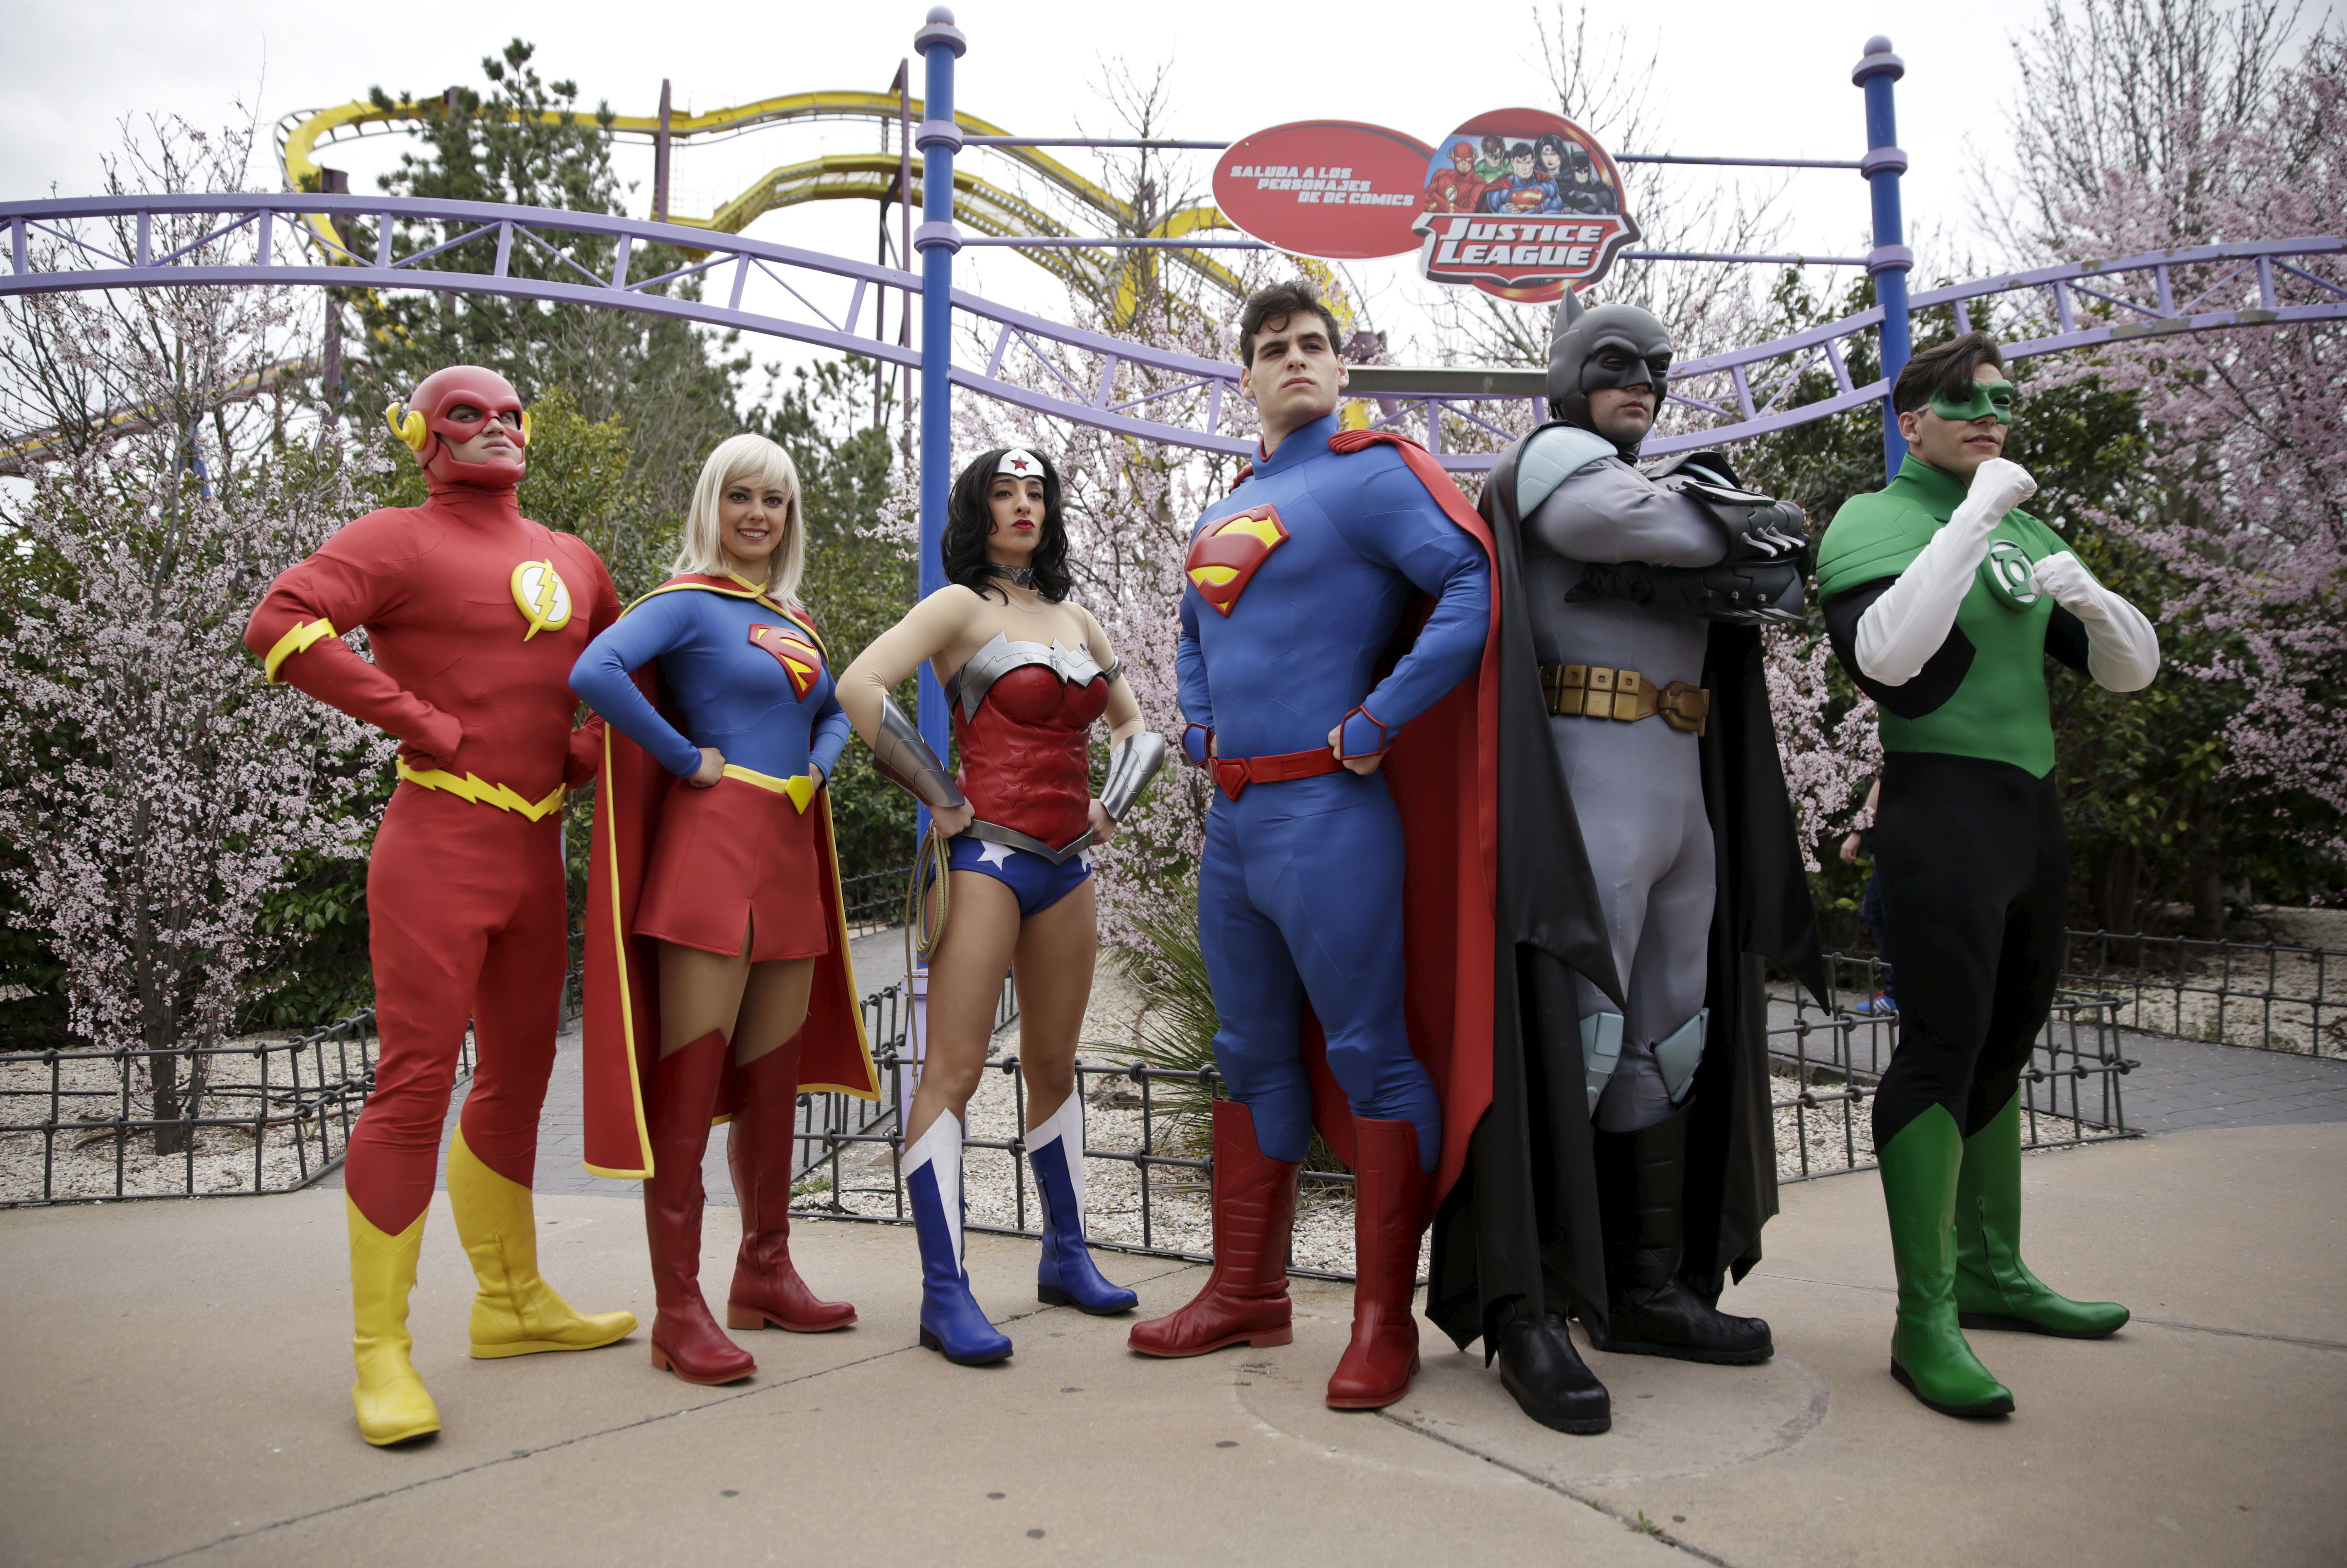 Actors dressed as members of the Justice League pose during the season inauguration of the Madrid Warner amusement park in San Martin de Valdeiglesias near Madrid